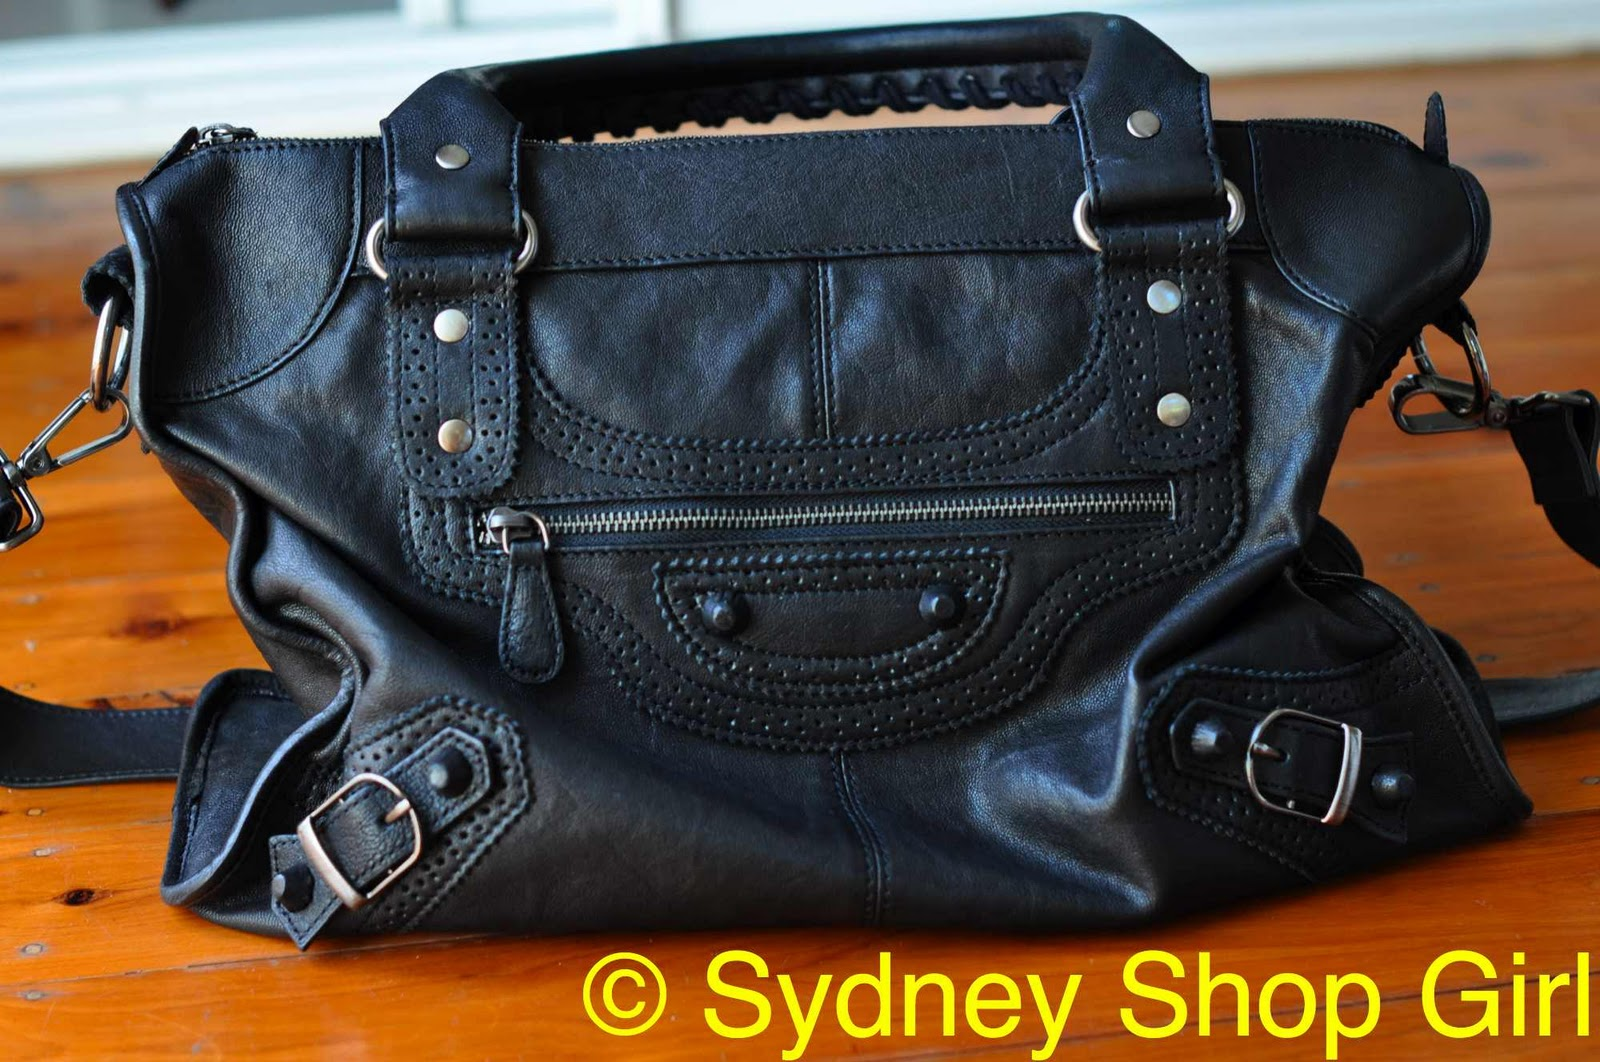 Witchery Elise Whip Sch Bag In Black